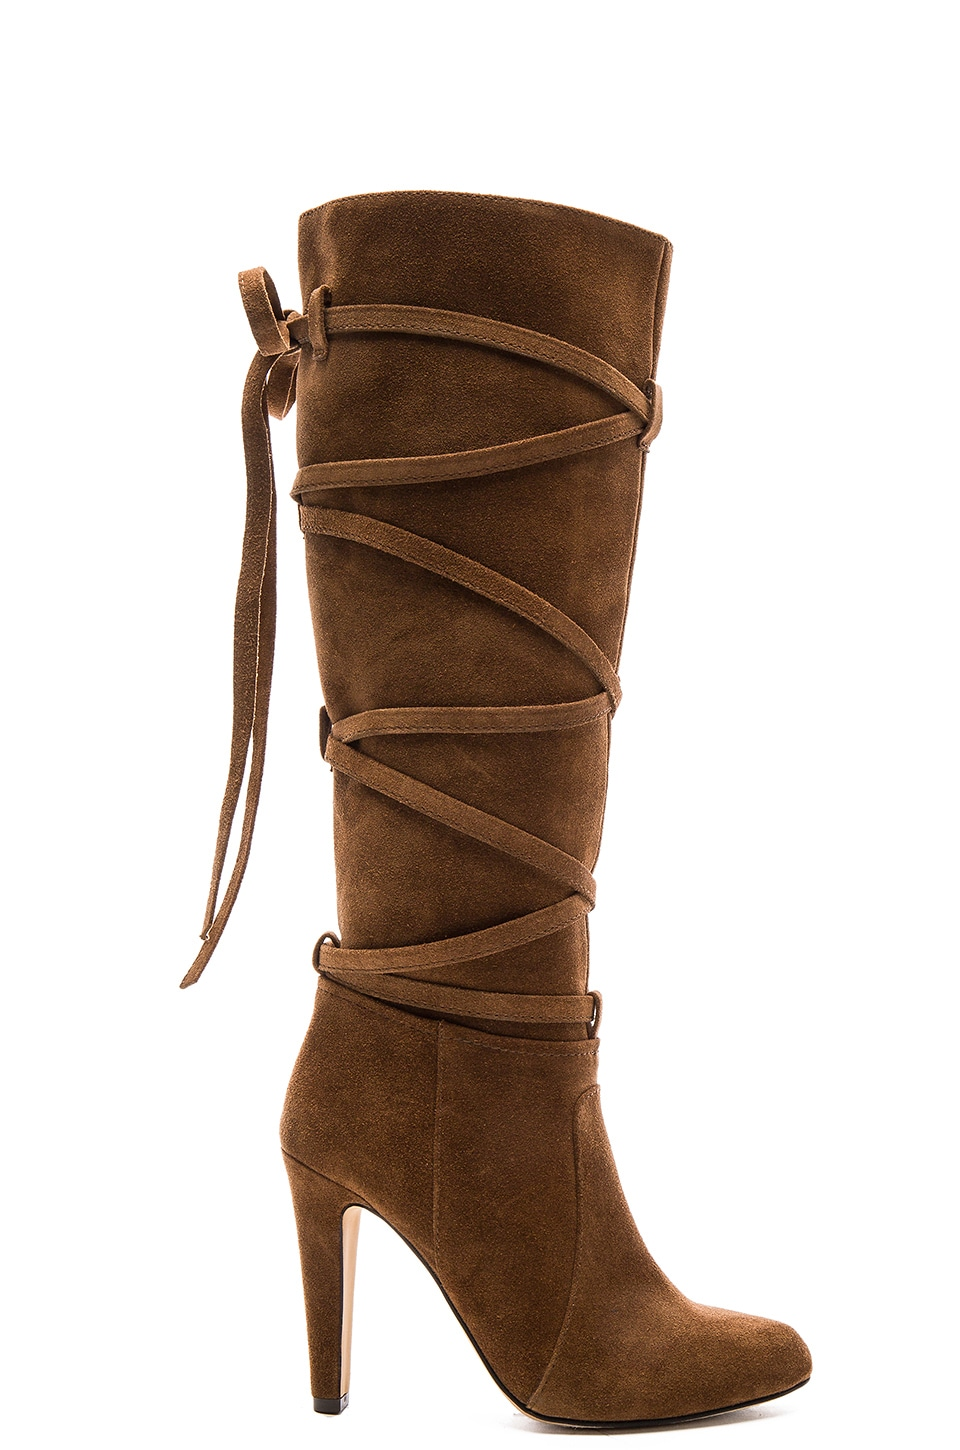 Vince Camuto Millay Boots in Show Down Brown